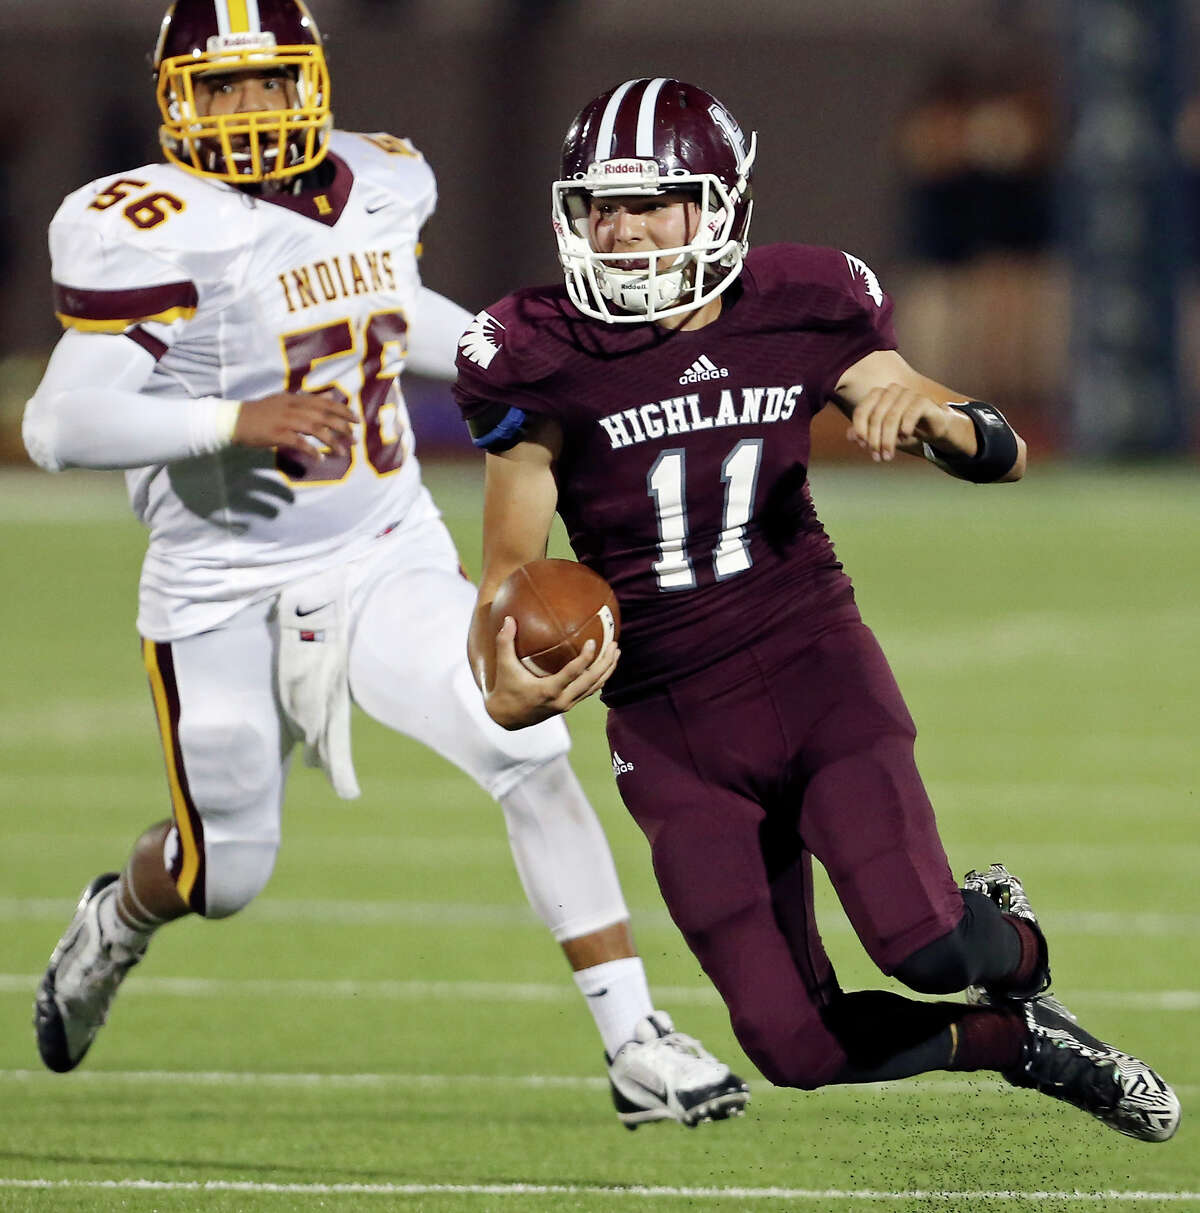 Highlands' Dylan Camacho heads up field around Harlandale's Christopher Laque during first half action on Sept. 24, 2015 at Alamo Stadium.